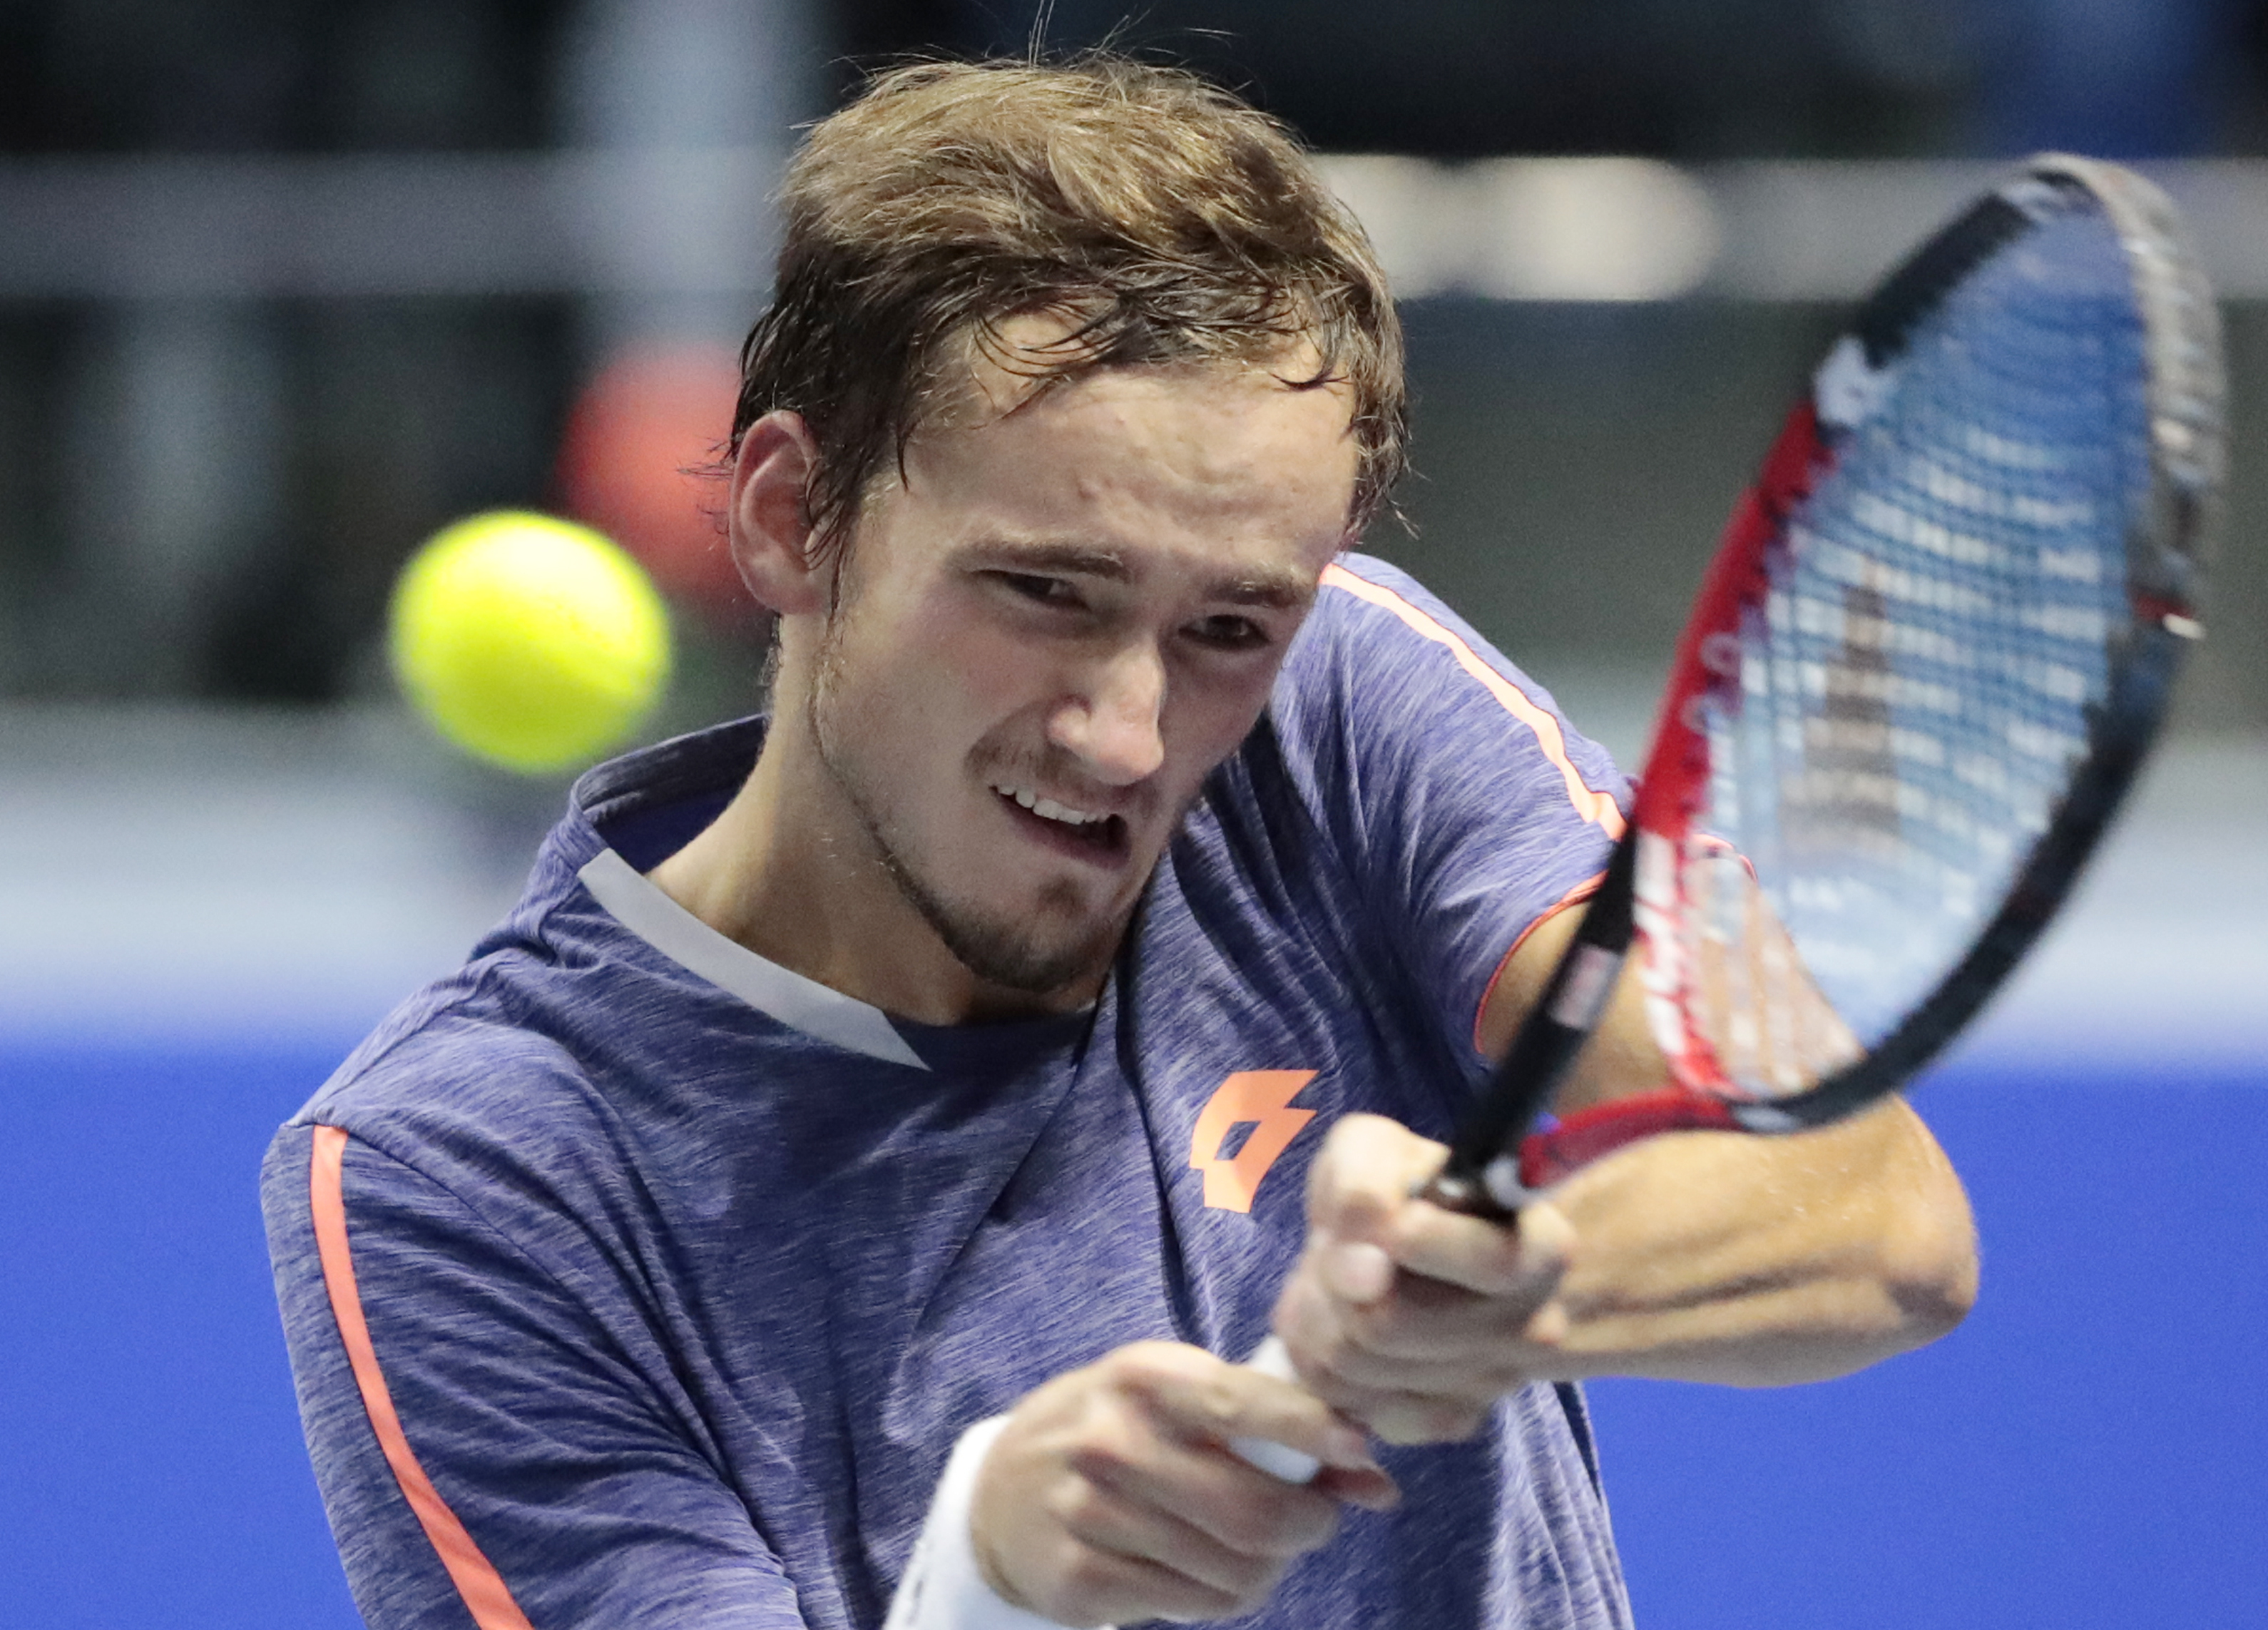 Daniil Medvedev of Russia returns the ball to Alexander Zverev of Germany during the St. Petersburg Open ATP tennis tournament match in St.Petersburg, Russia, Thursday, Sept. 22, 2016. (AP Photo/Dmitri Lovetsky)